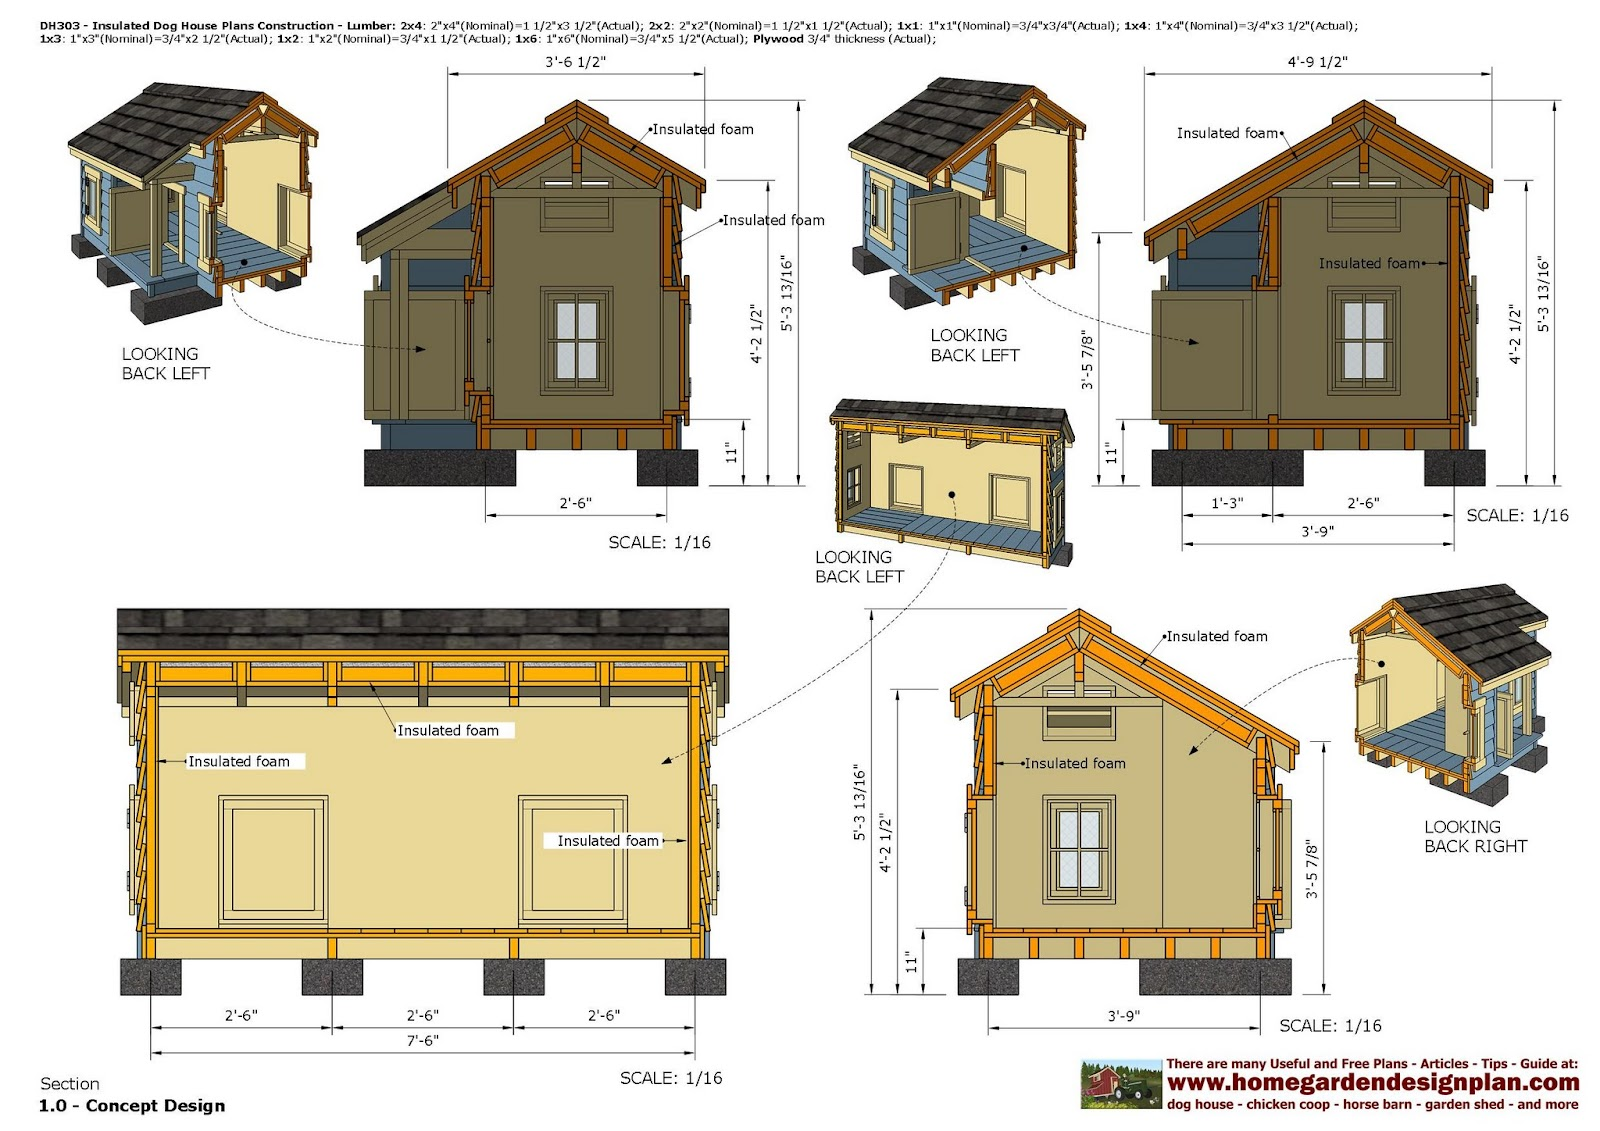 home garden plans dh303 insulated dog house plans dog house design how to build an. Black Bedroom Furniture Sets. Home Design Ideas